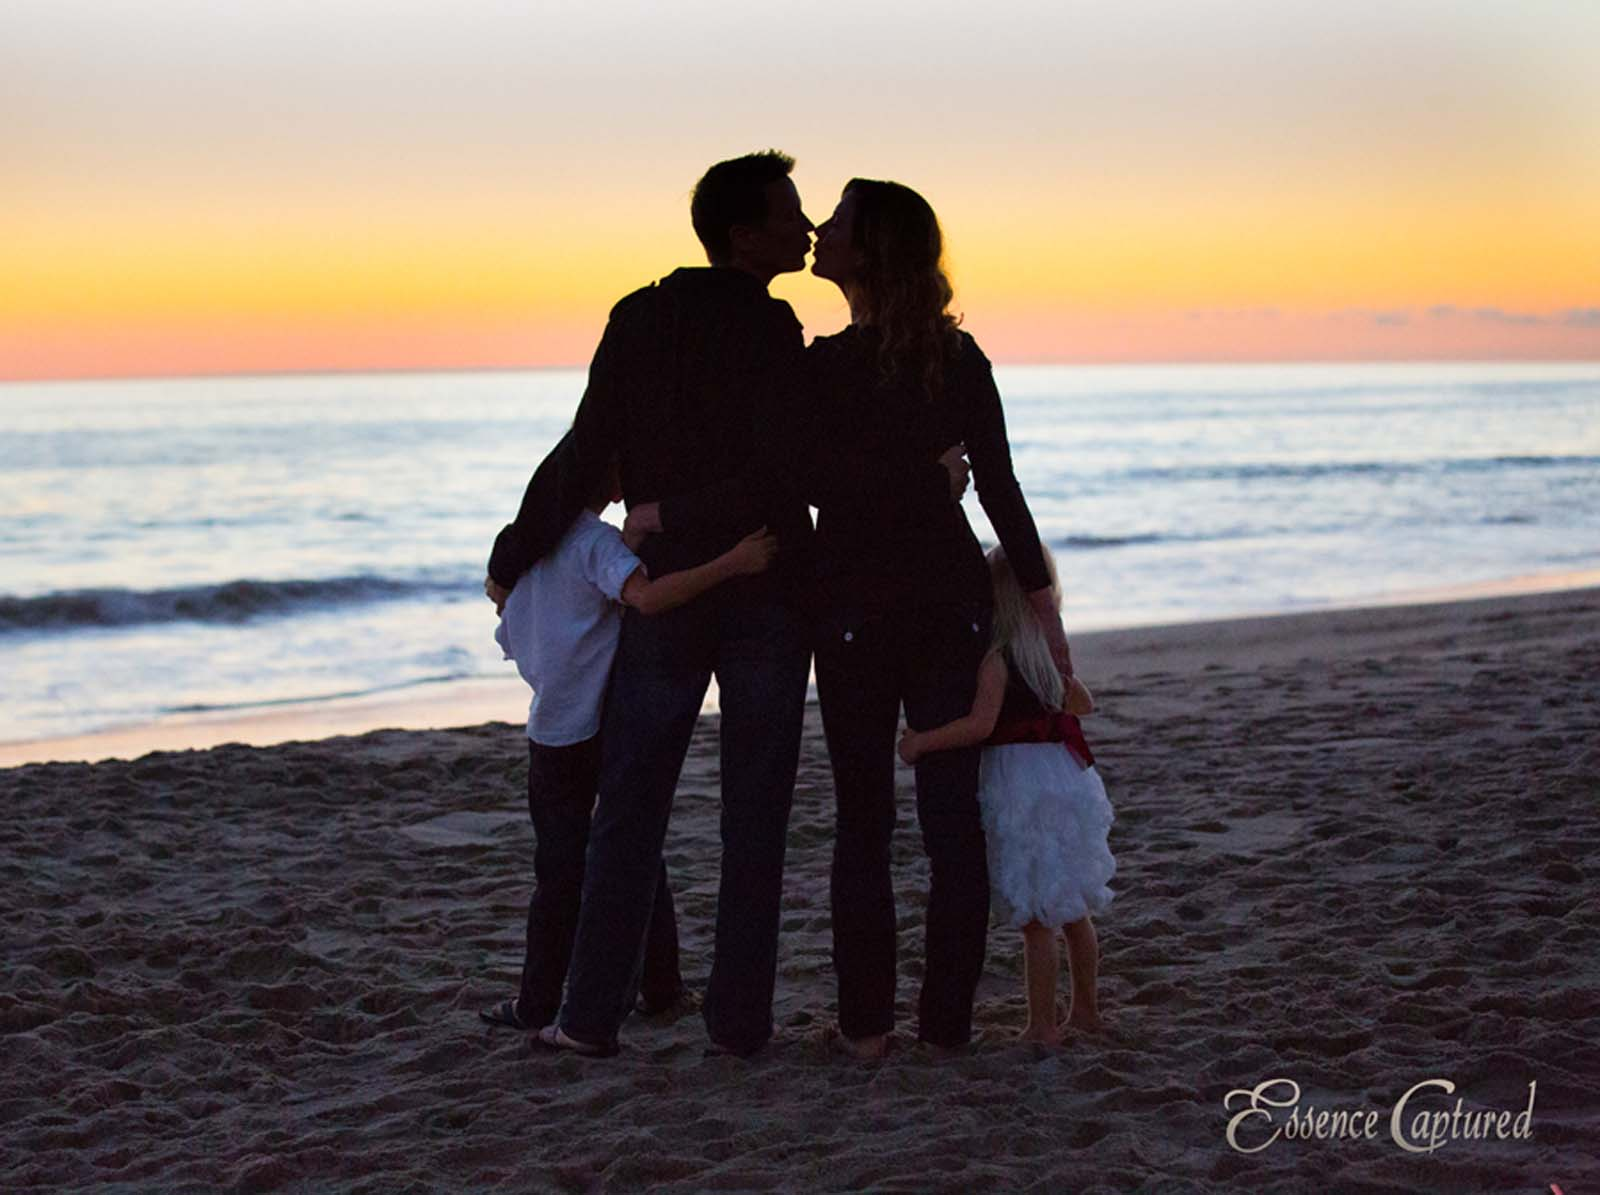 silhouette of family of four mom dad kiss walking on beach at sunset